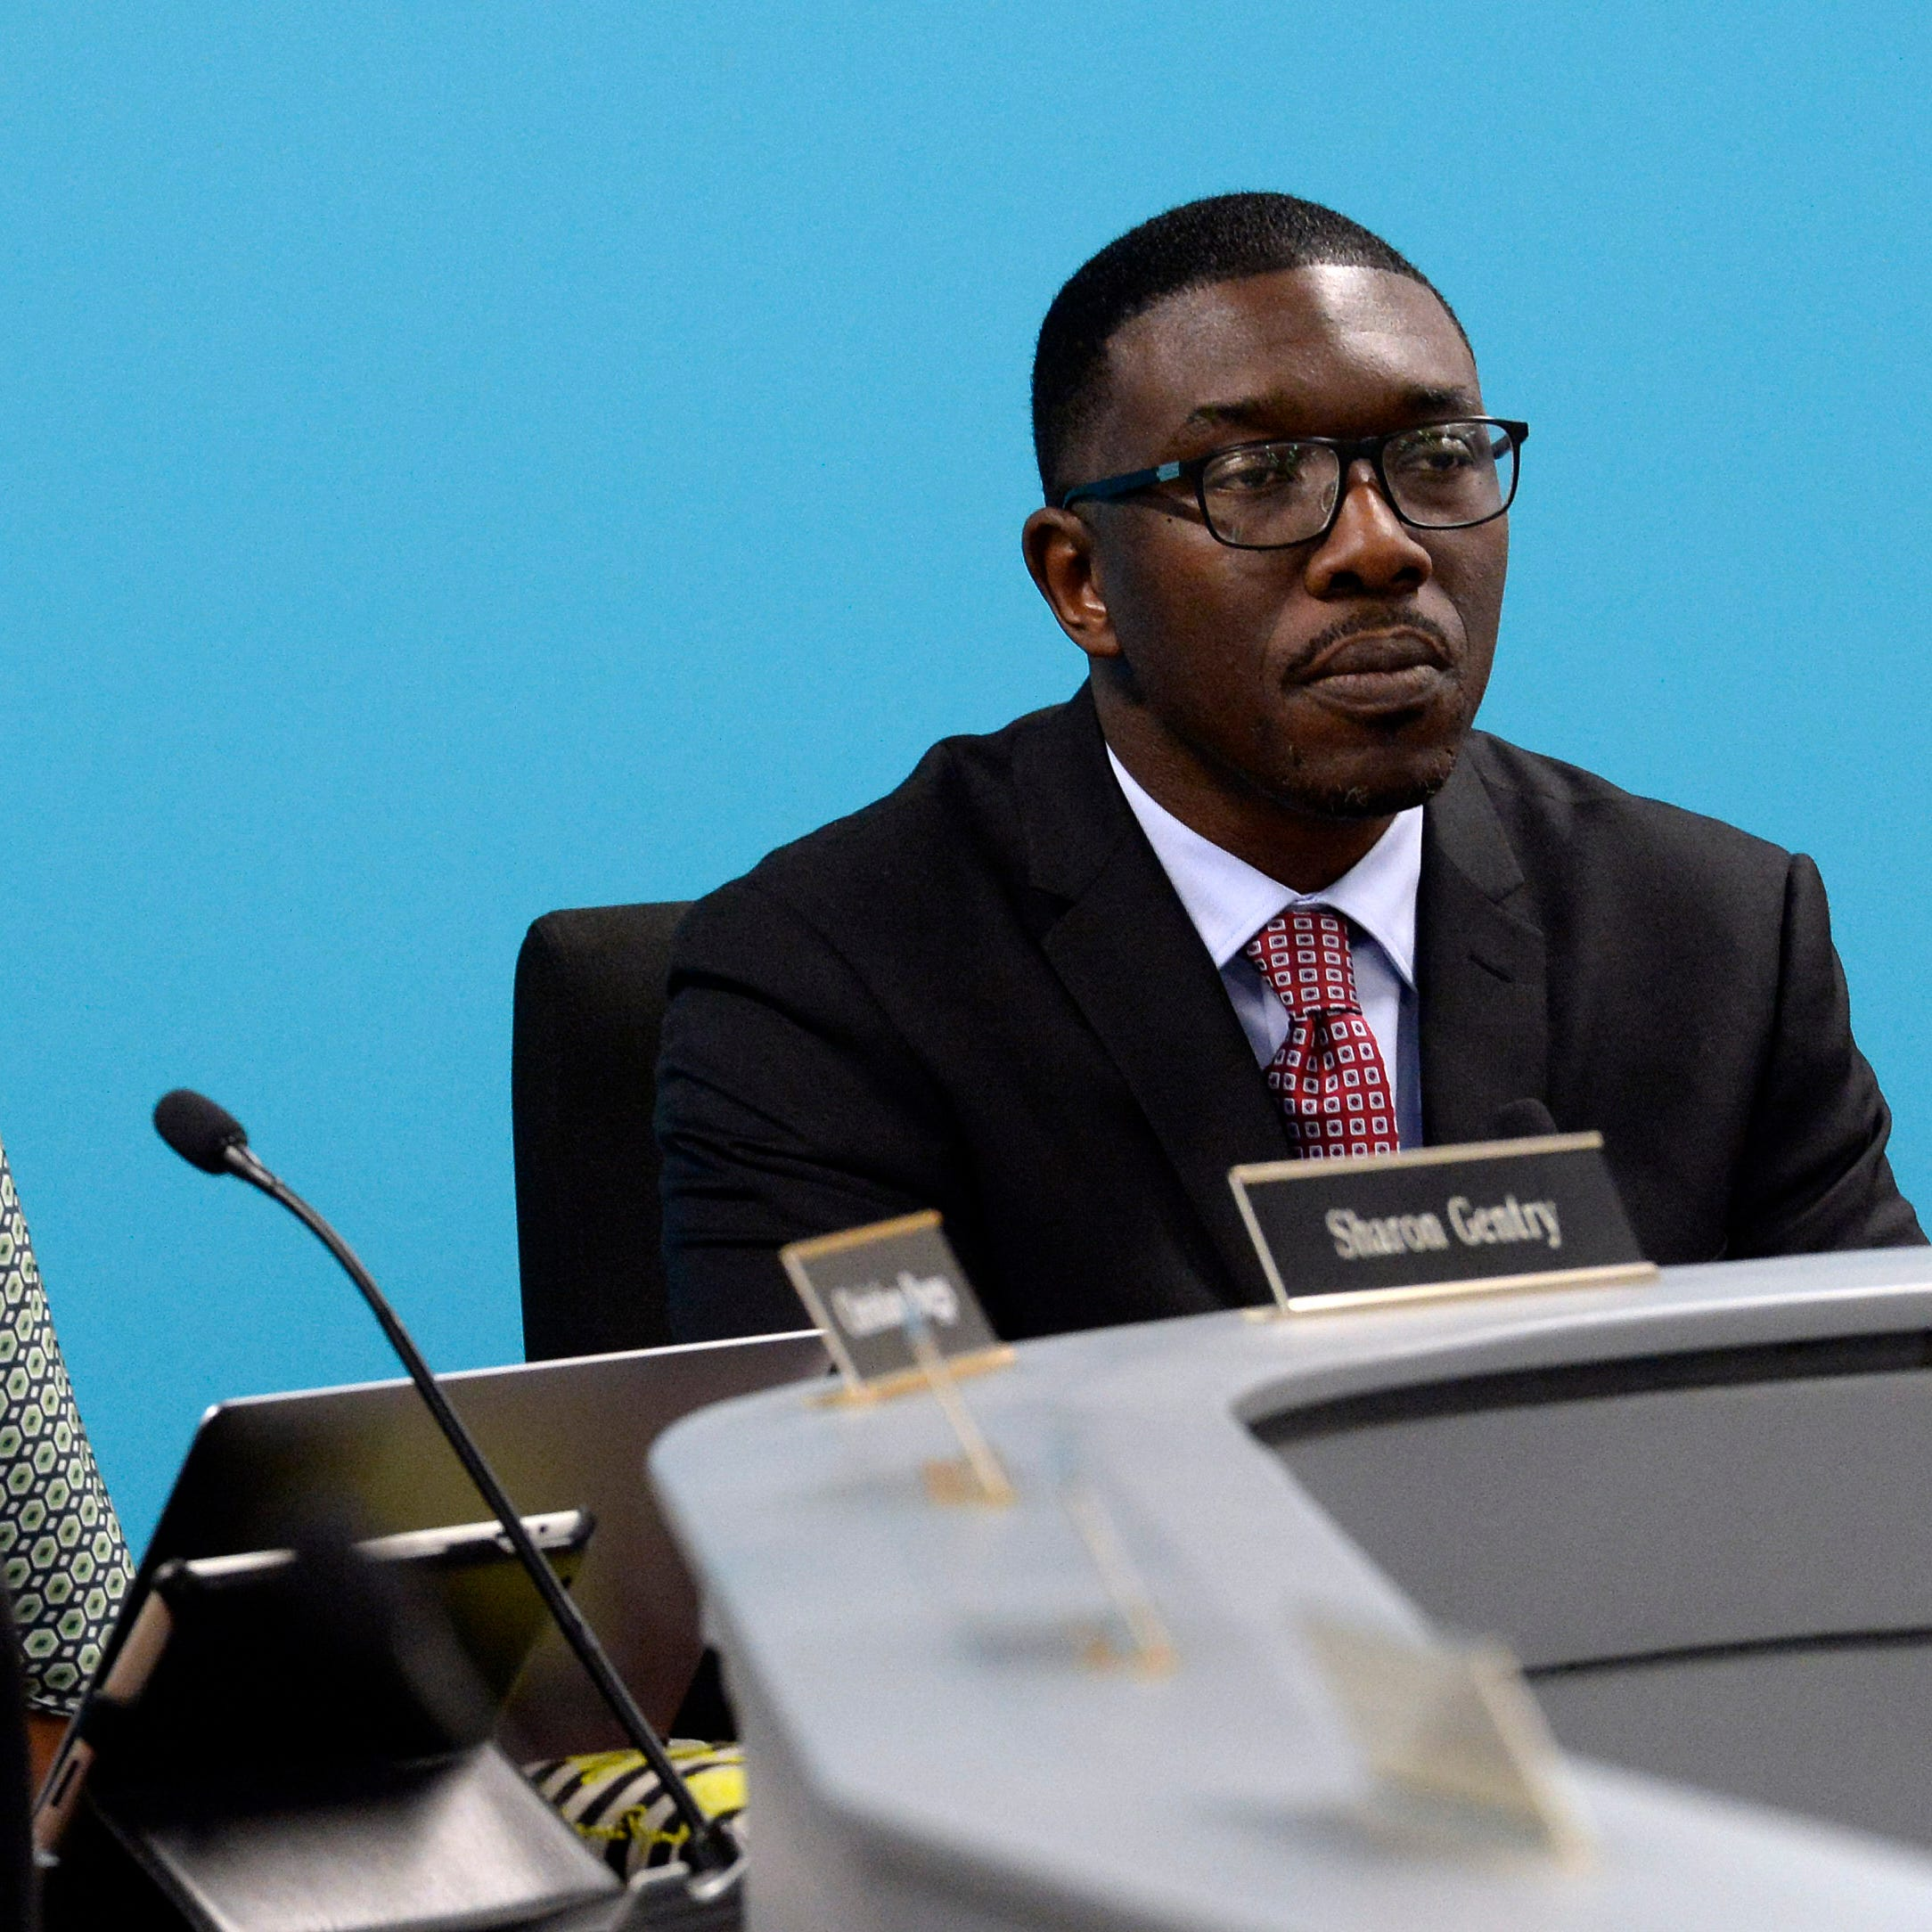 Nashville school board's battle with Shawn Joseph has deeper meaning, and it's disturbing | Opinion